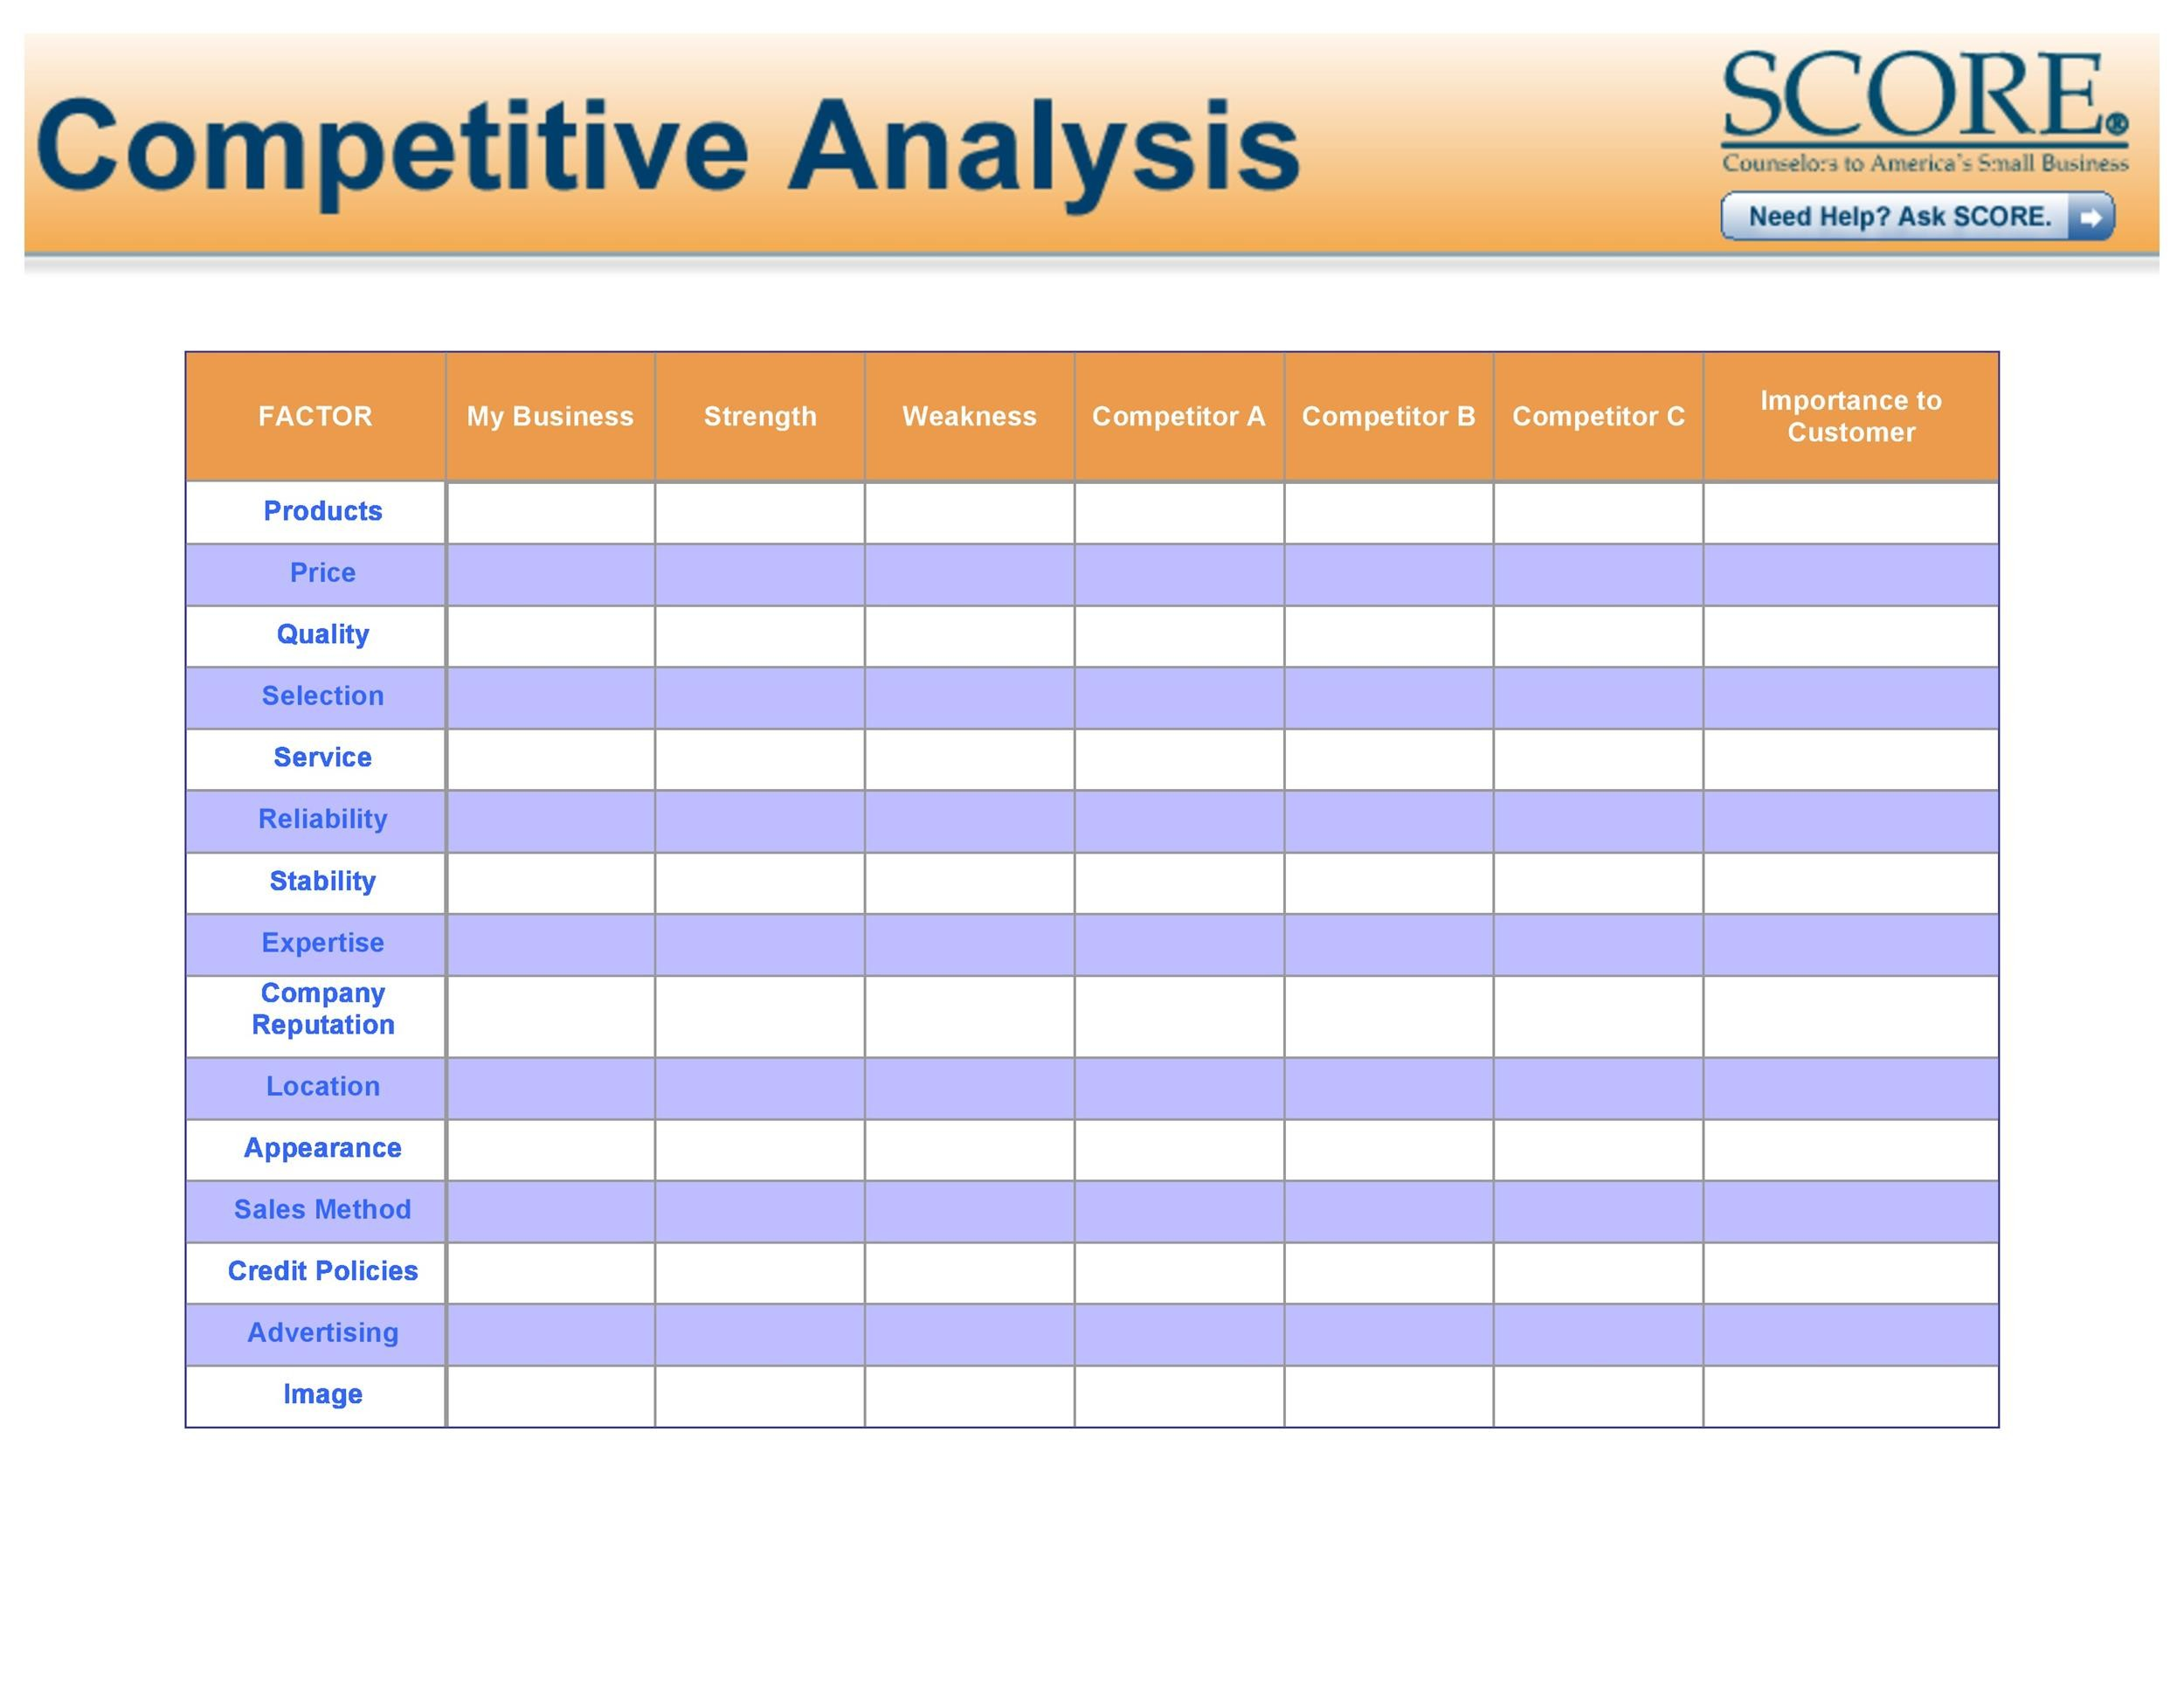 Competitive Analysis Templates - 40 Great Examples [Excel, Word, PDF ...